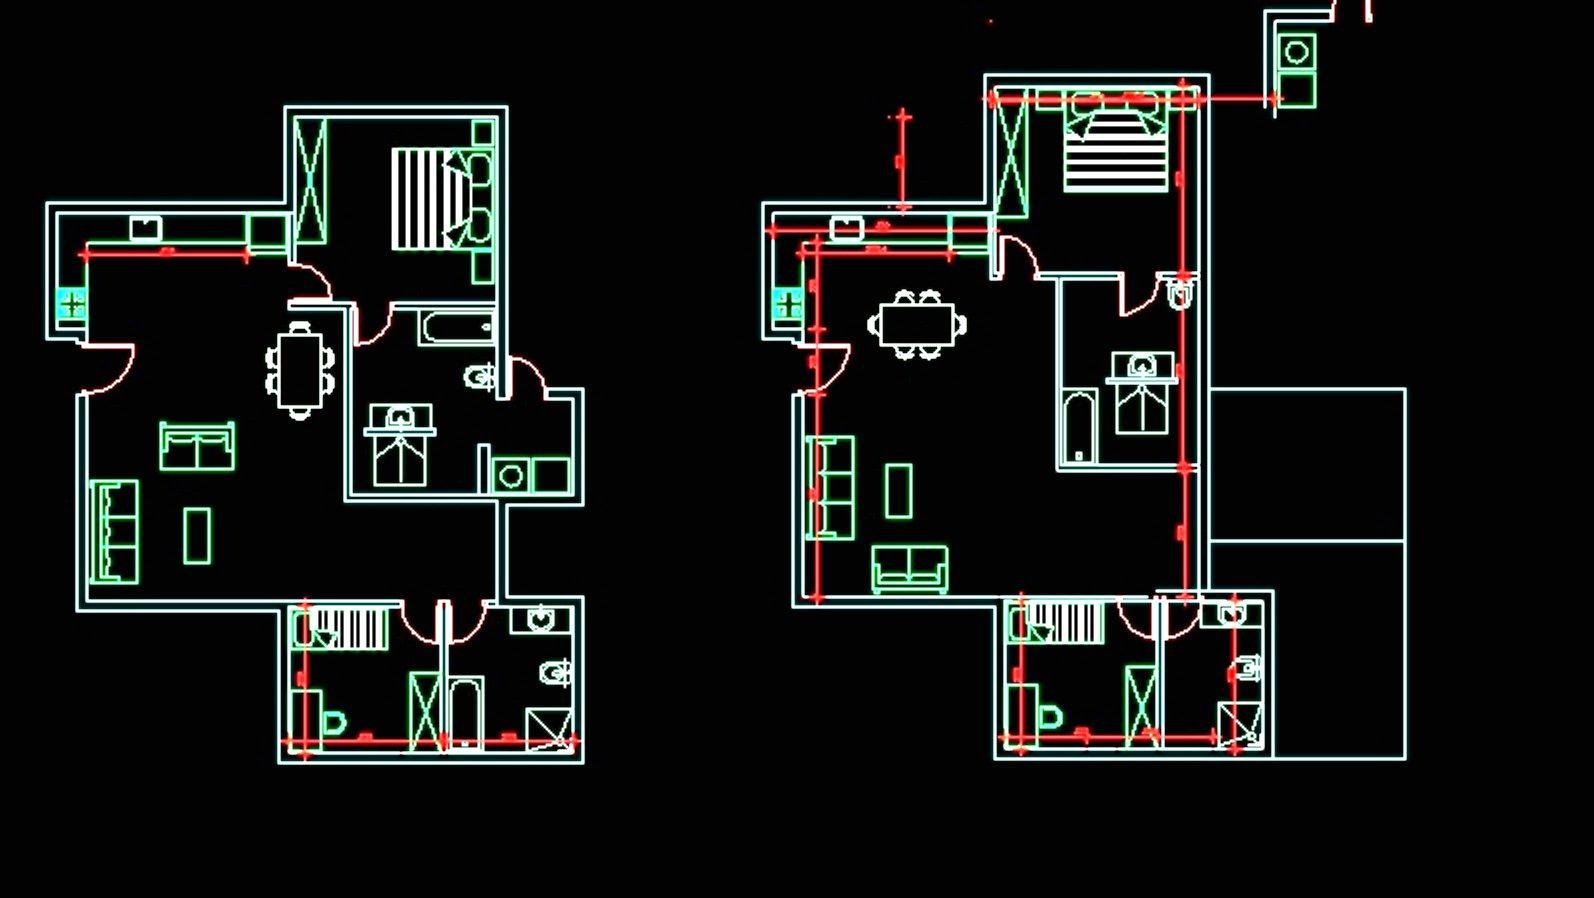 Architectural floor plans of a home/ office.